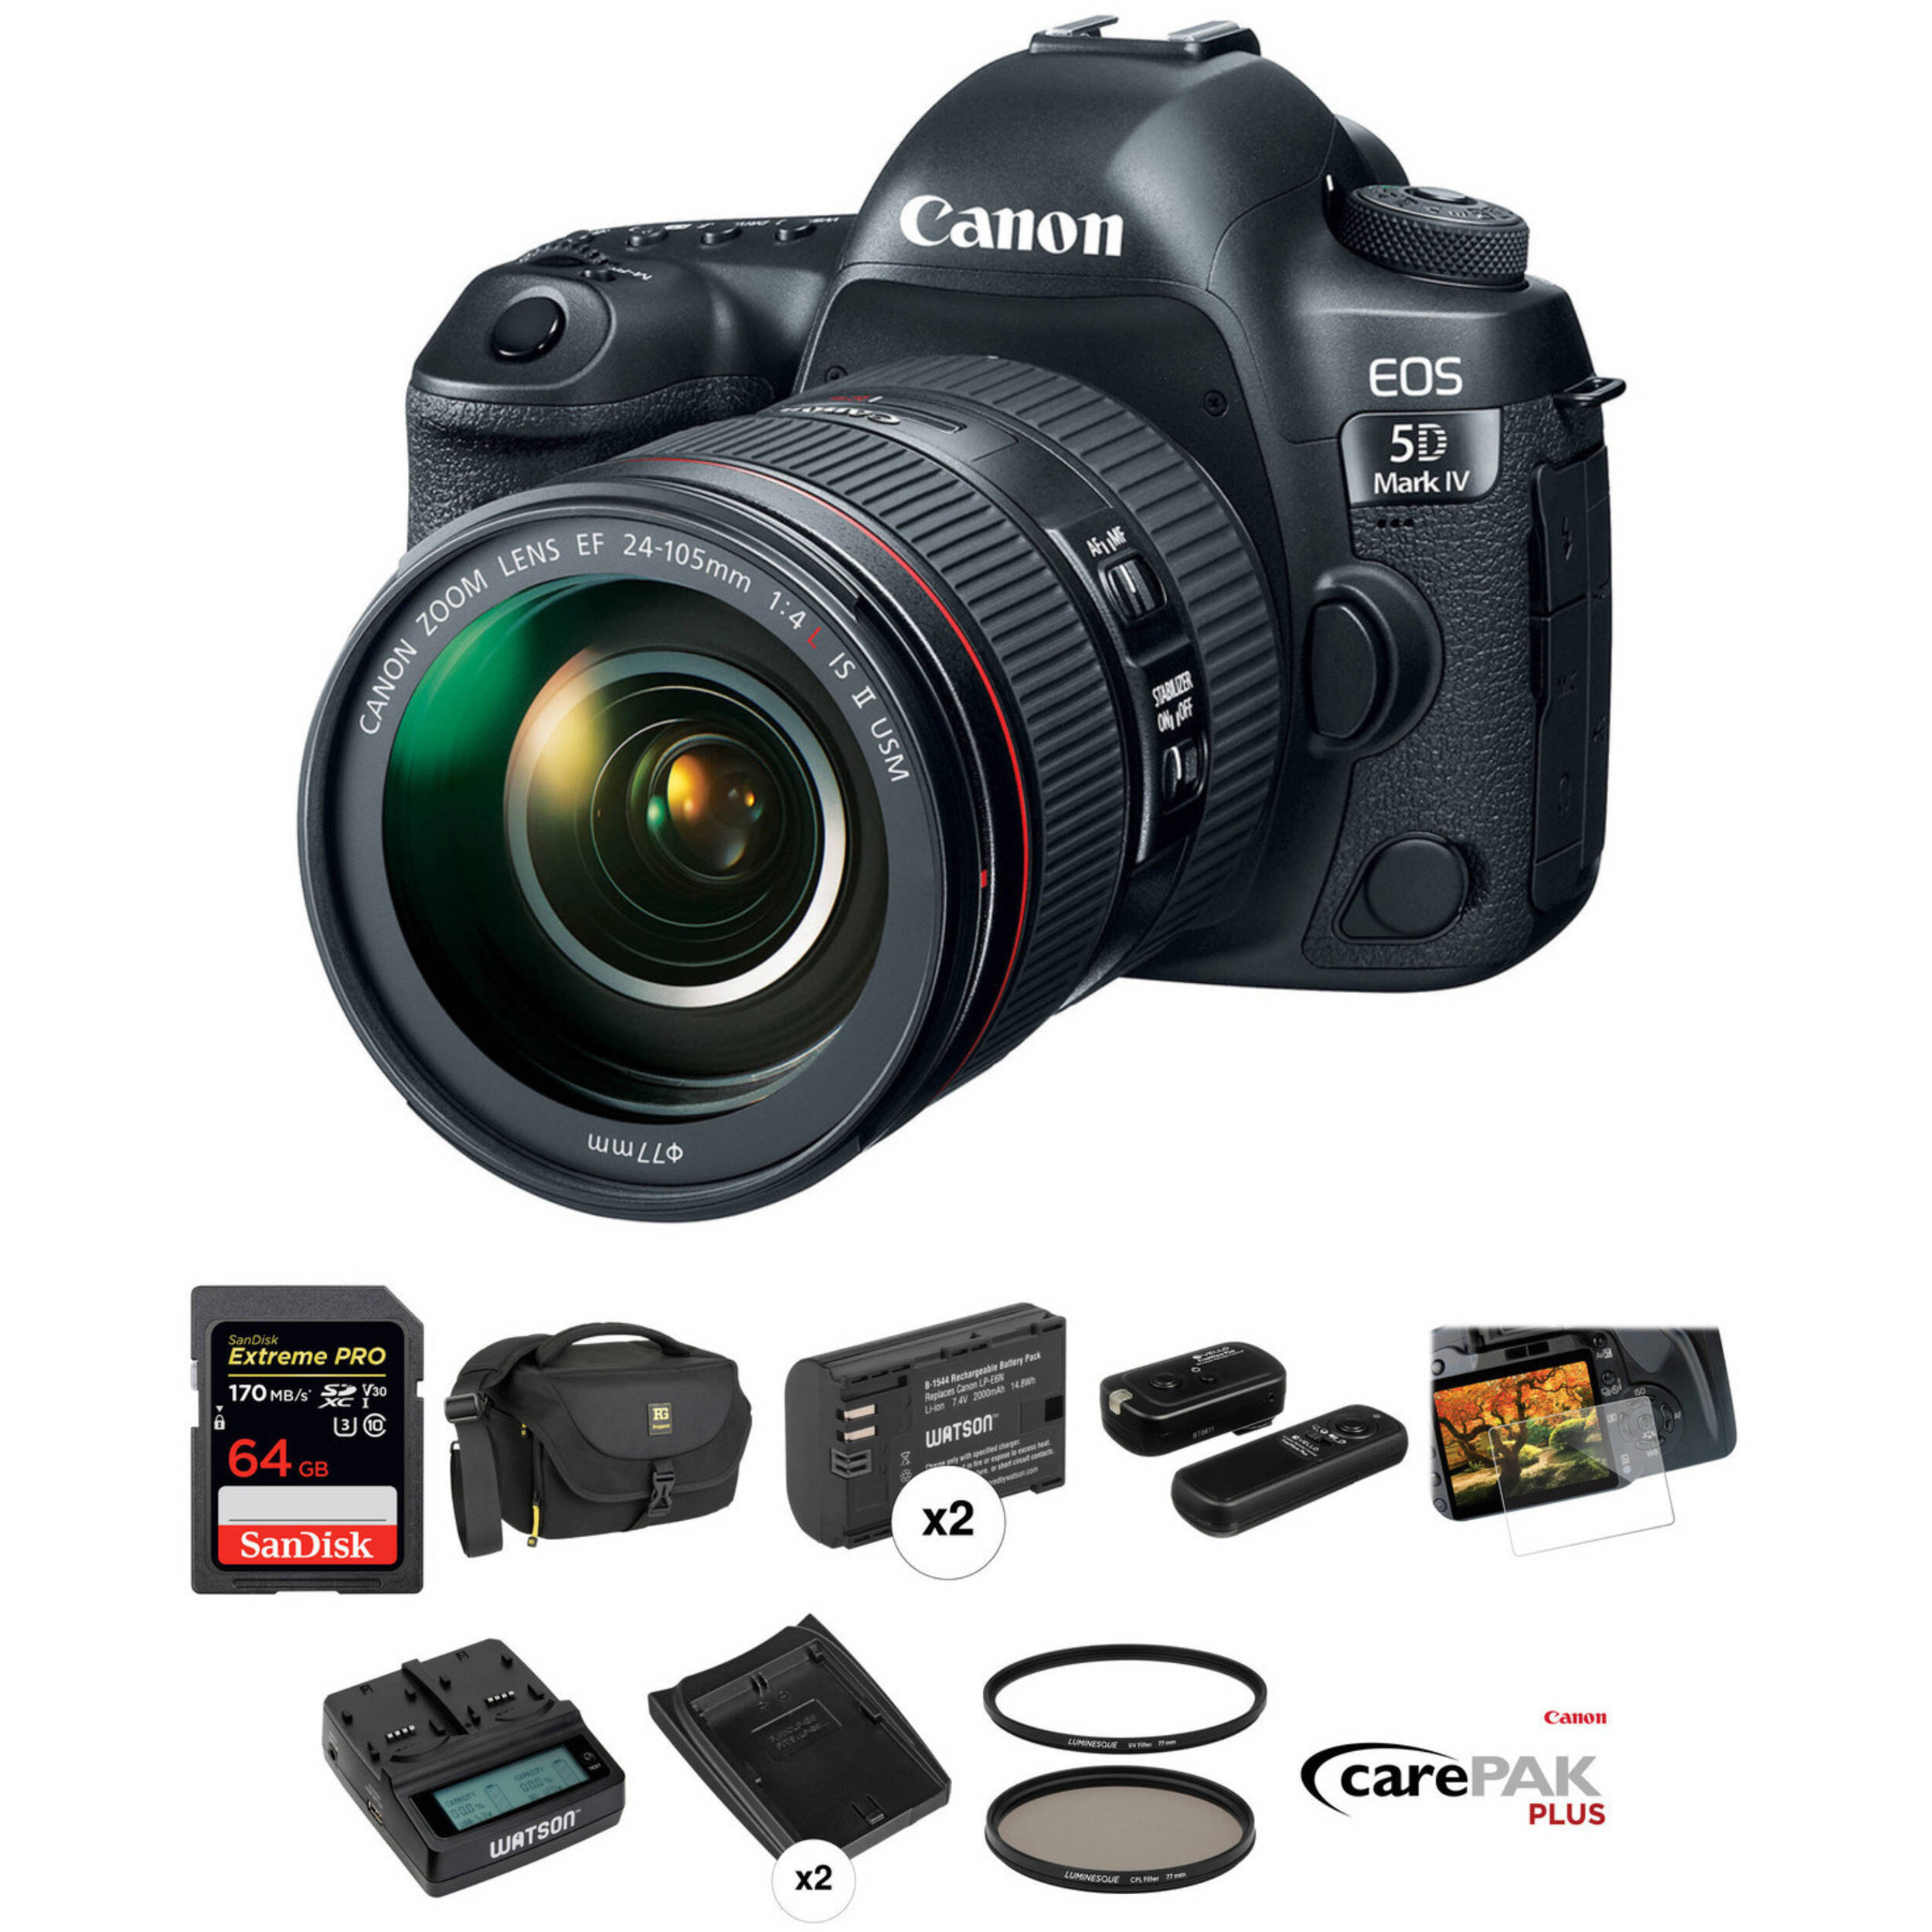 7c51be8c18c792 Canon EOS 5D Mark IV DSLR Camera with 24-105mm f 4L II Lens Deluxe Kit